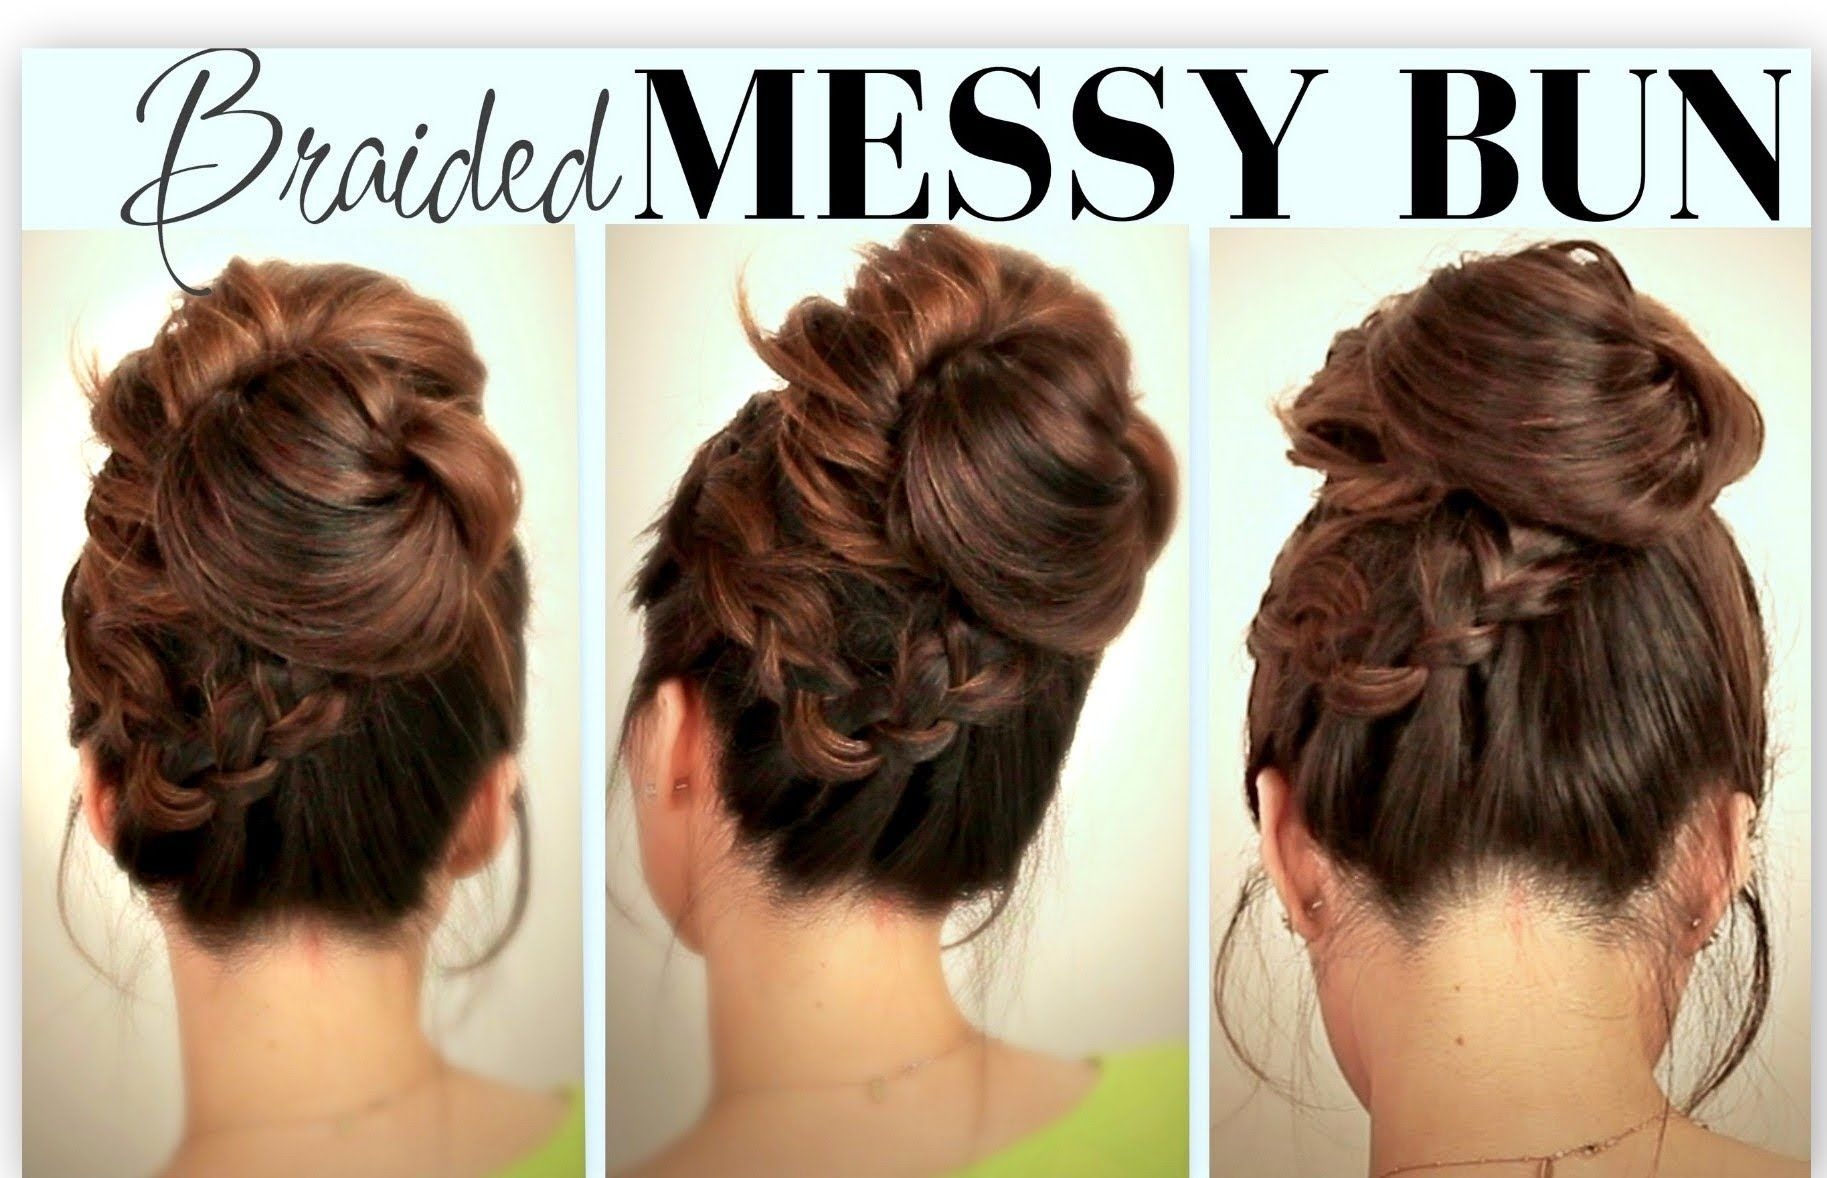 Cute Everyday School Hairstyles Big Messy Bun With Braids Updos For Medium Long Hair Tutorial Long Hair Tutorial Cool Hairstyles Hair Styles